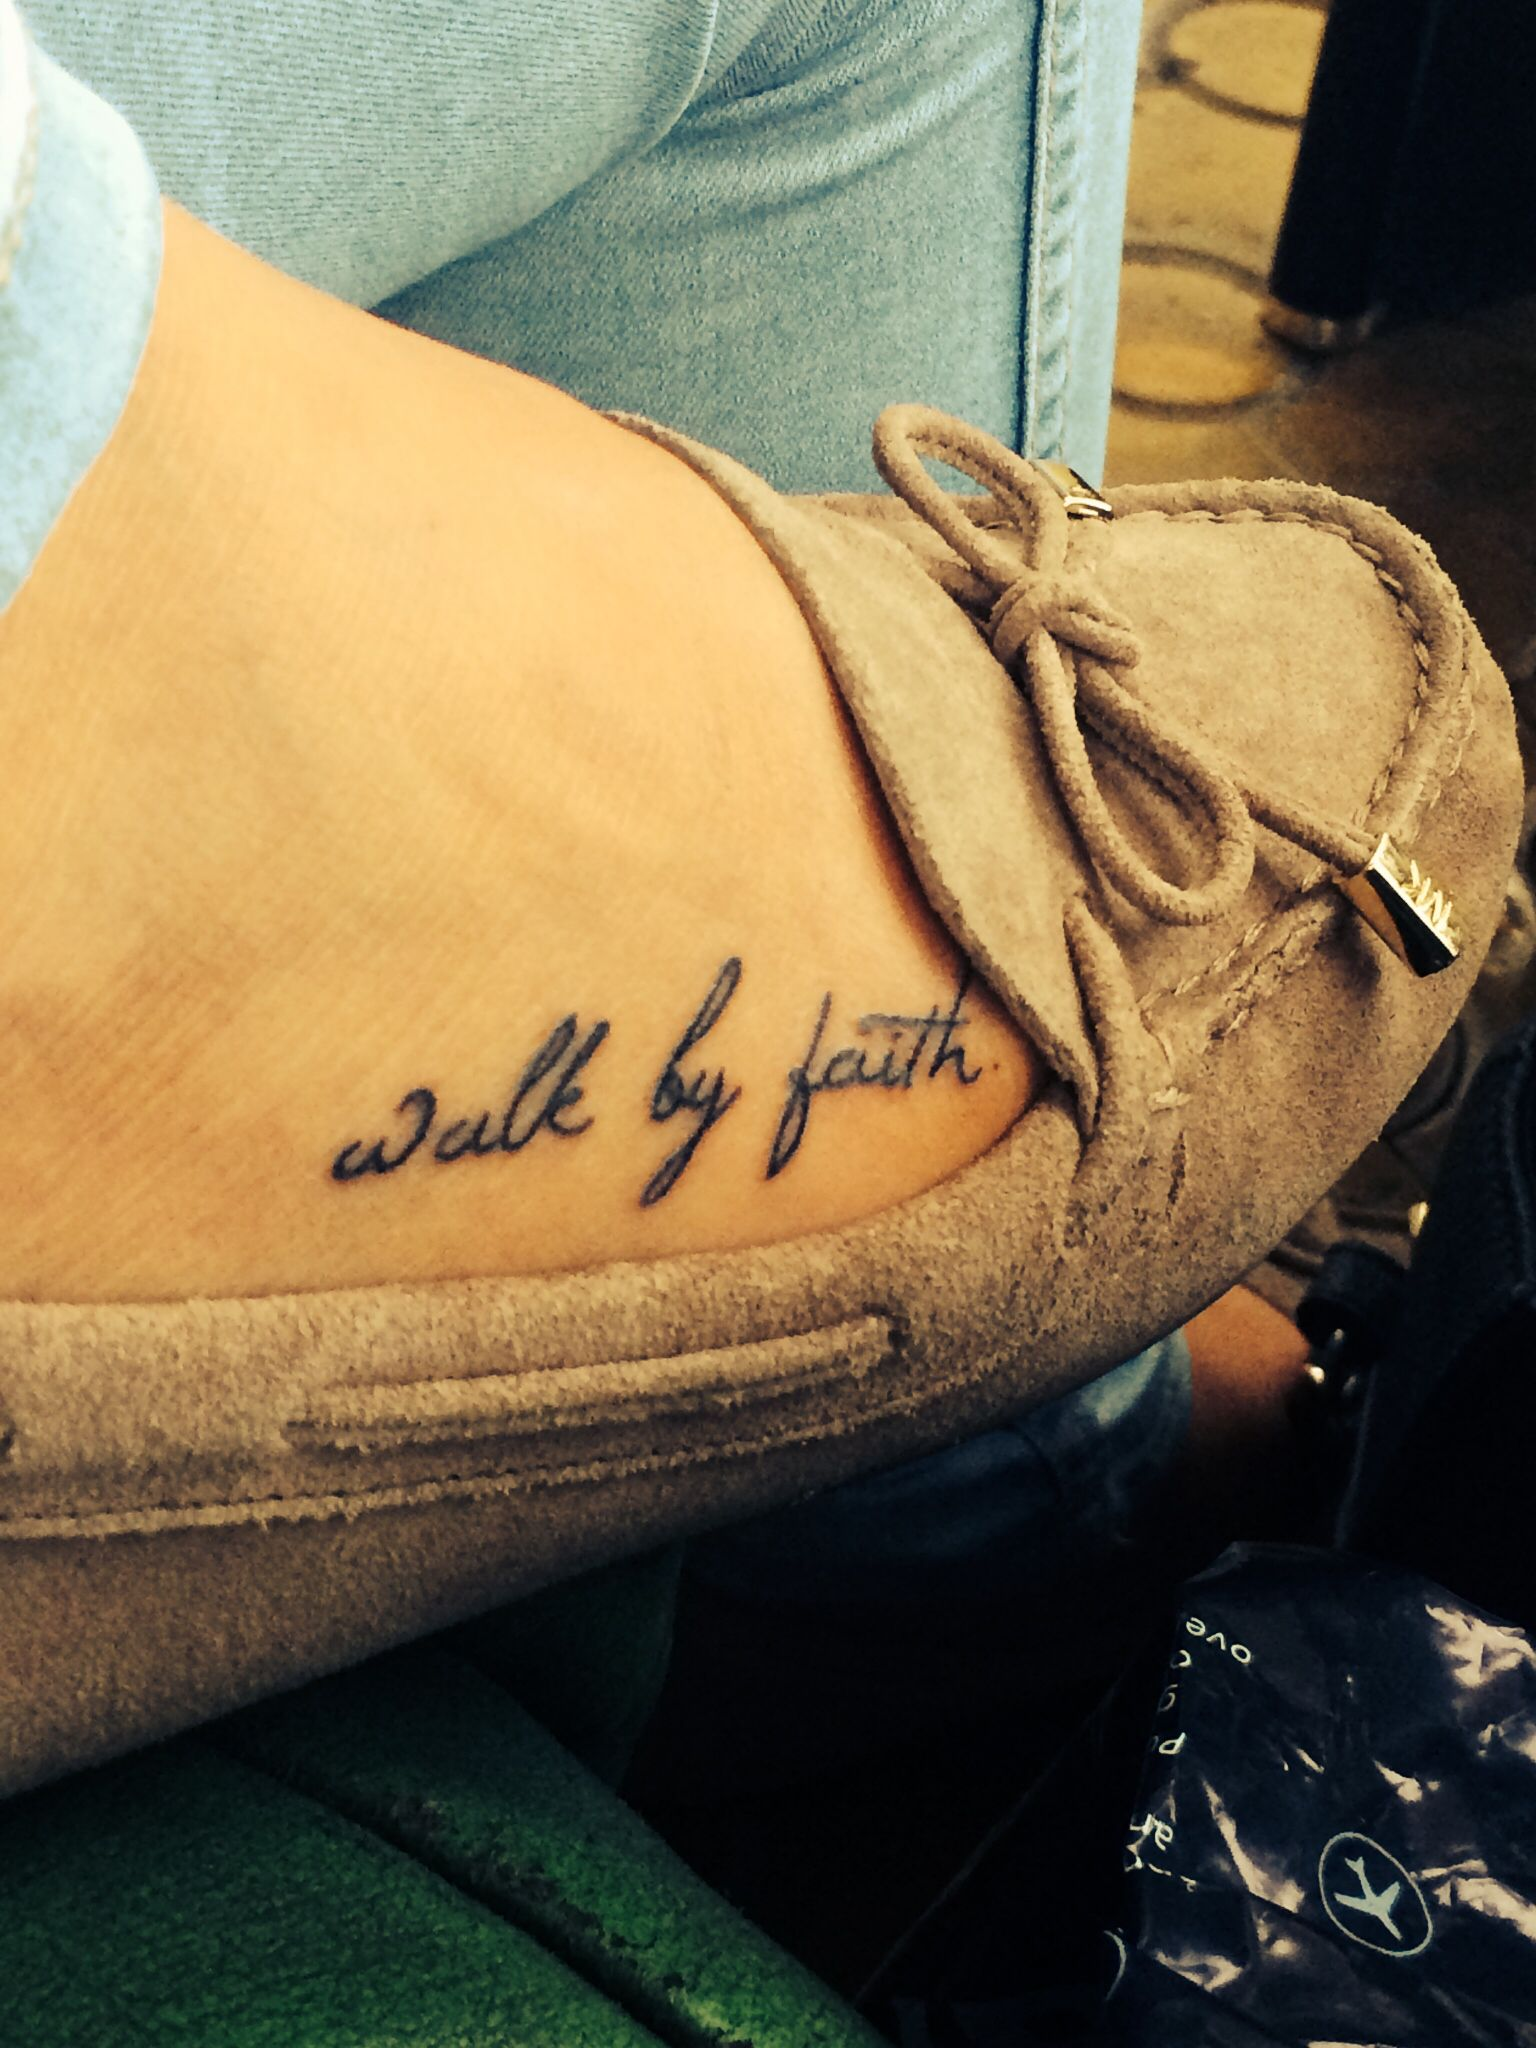 Tattoo ideas small walk by faith foot shoes Tattooes